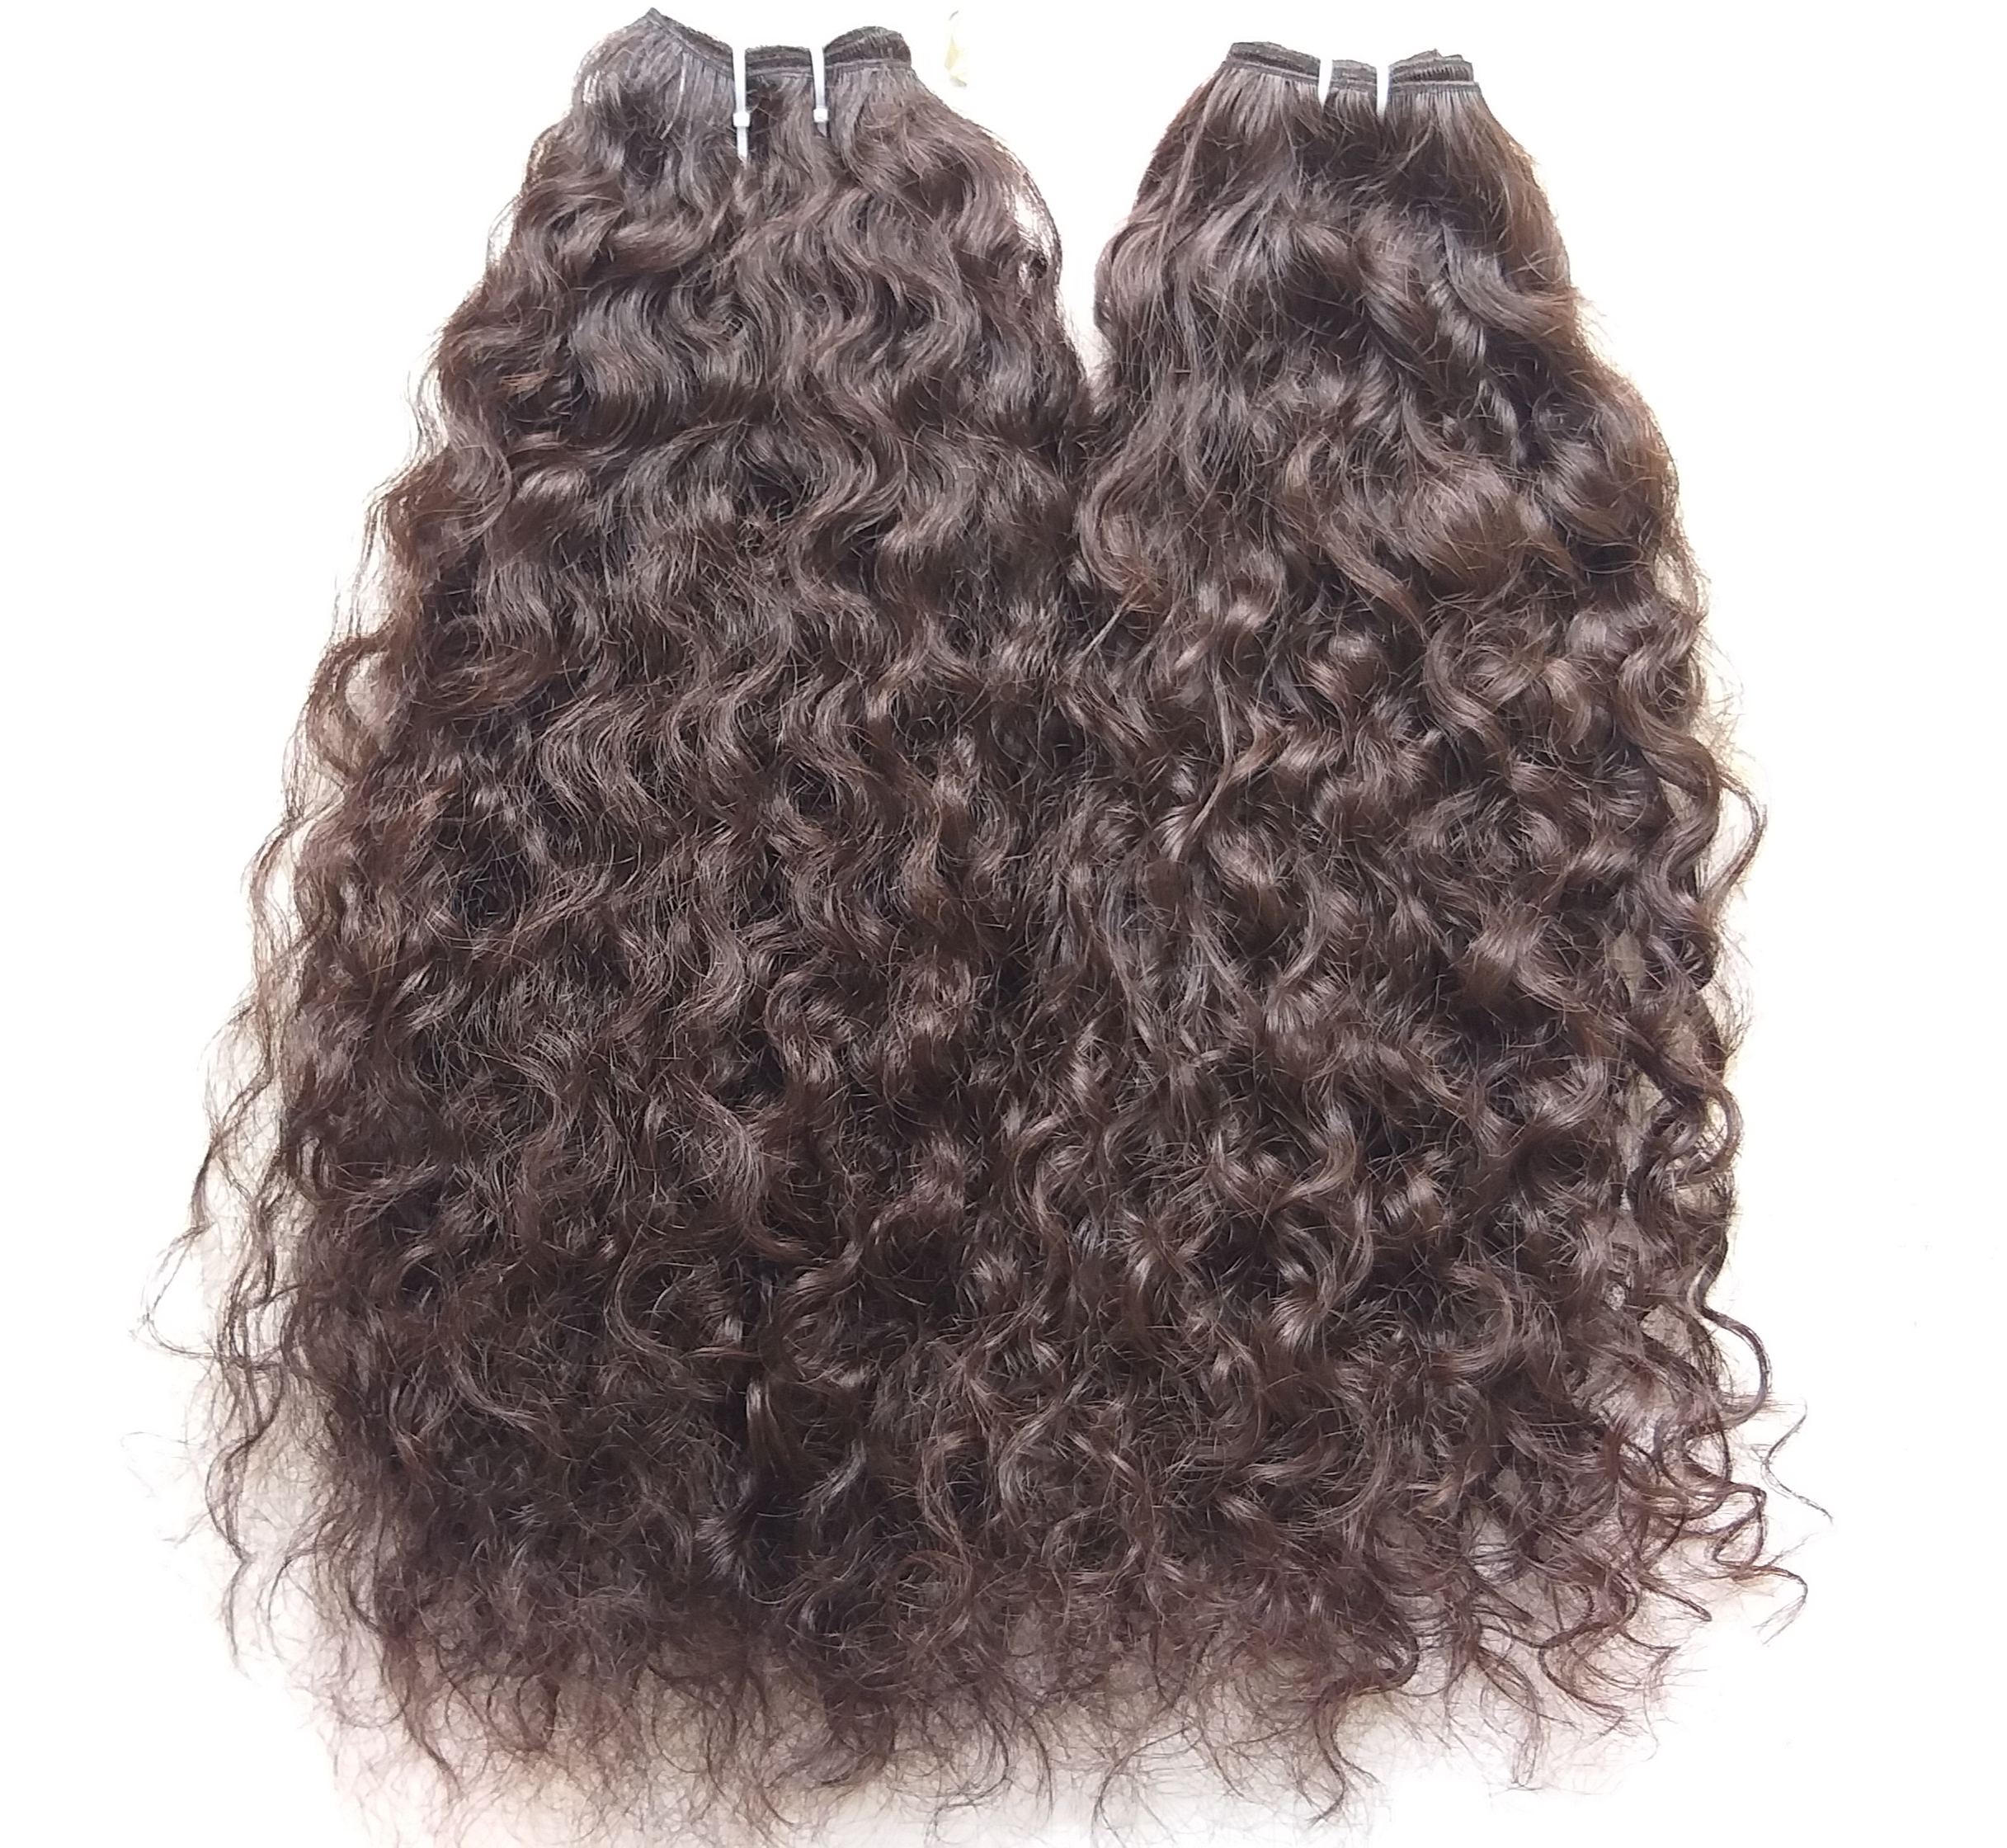 Remy Curly Human hair weaves, Soft hair